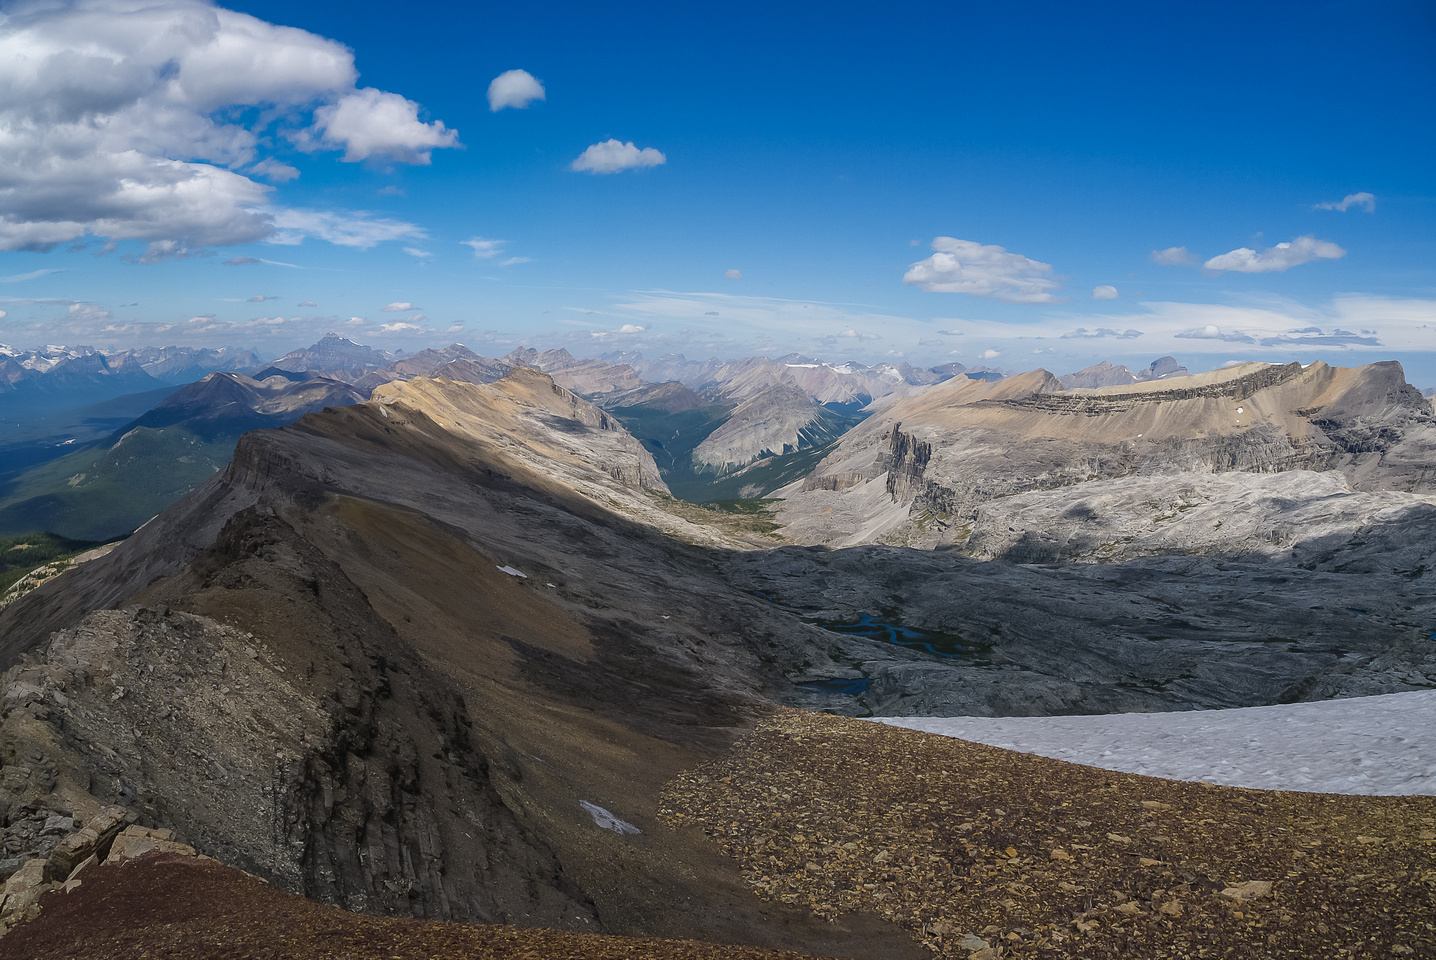 Armor Peak is on the left and Pulsatilla on the right.